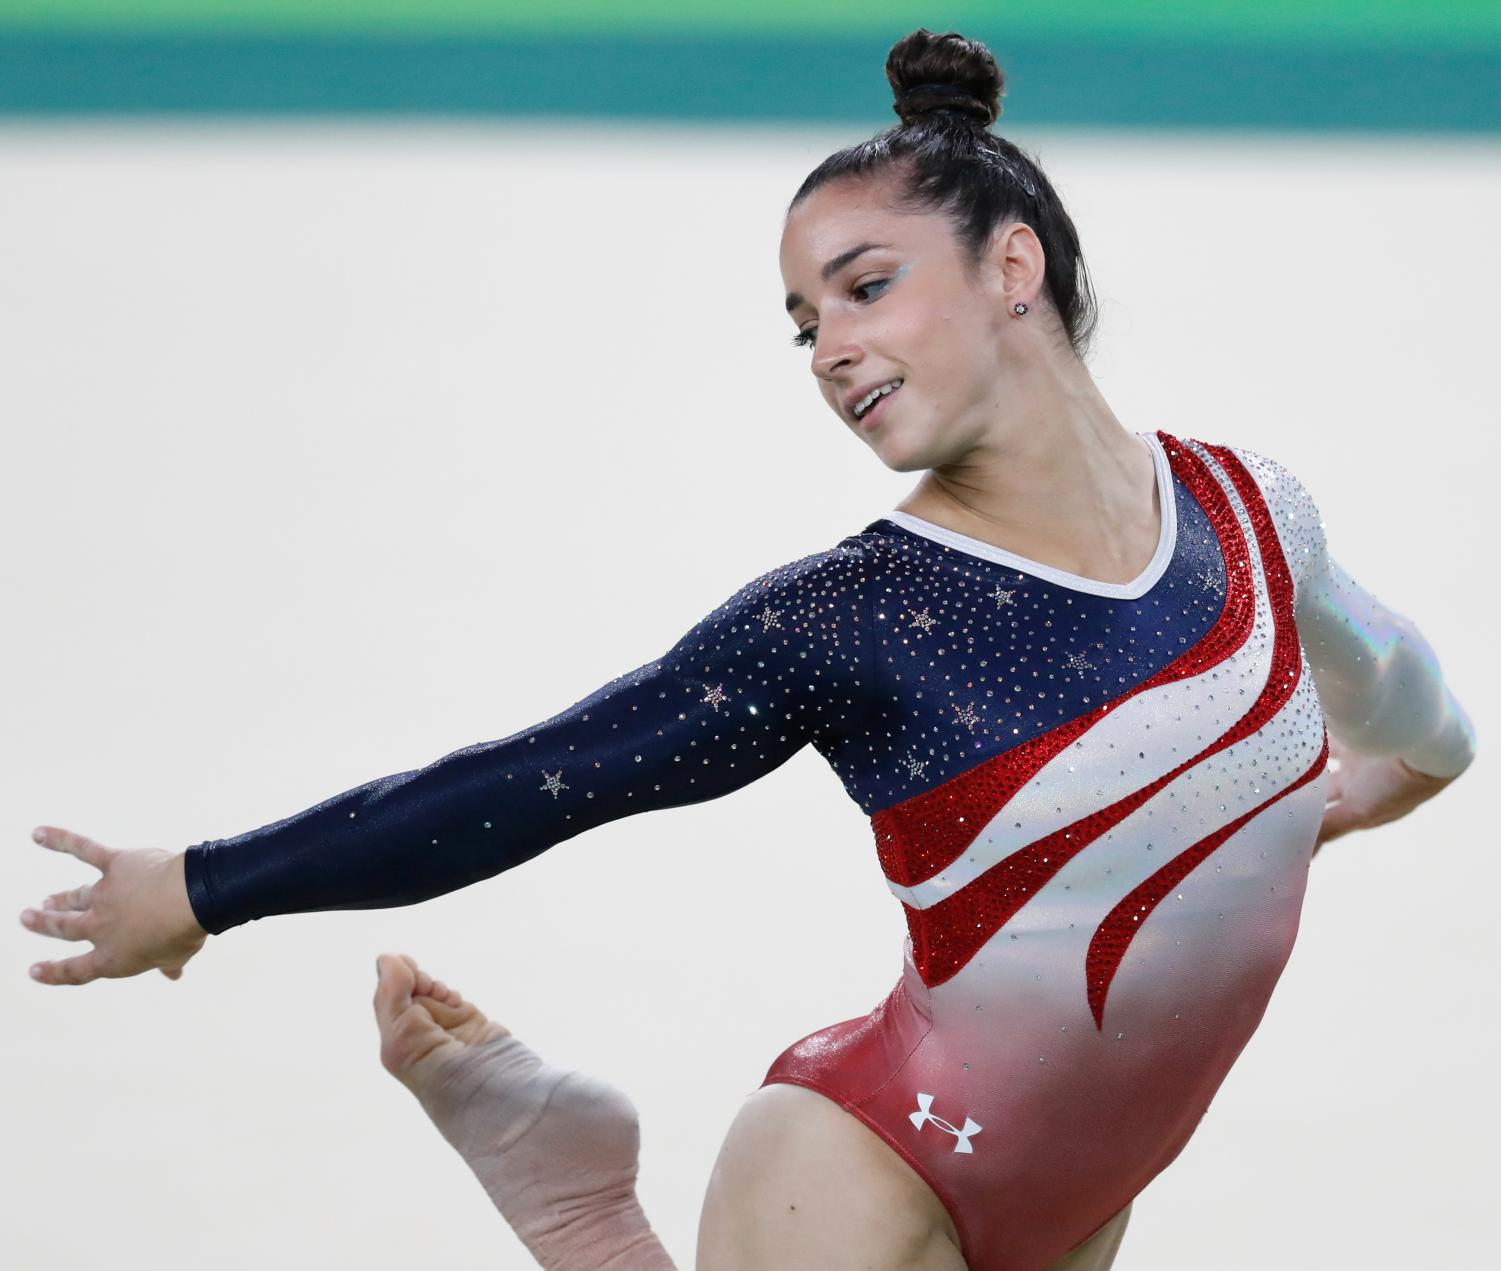 Six-time Olympic medalist Aly Raisman was one of the many gymnasts to come forward about their experiences with Nassar's abuse, quickly becoming a face of this movement for women's rights. Photo courtesy of Creative Commons.